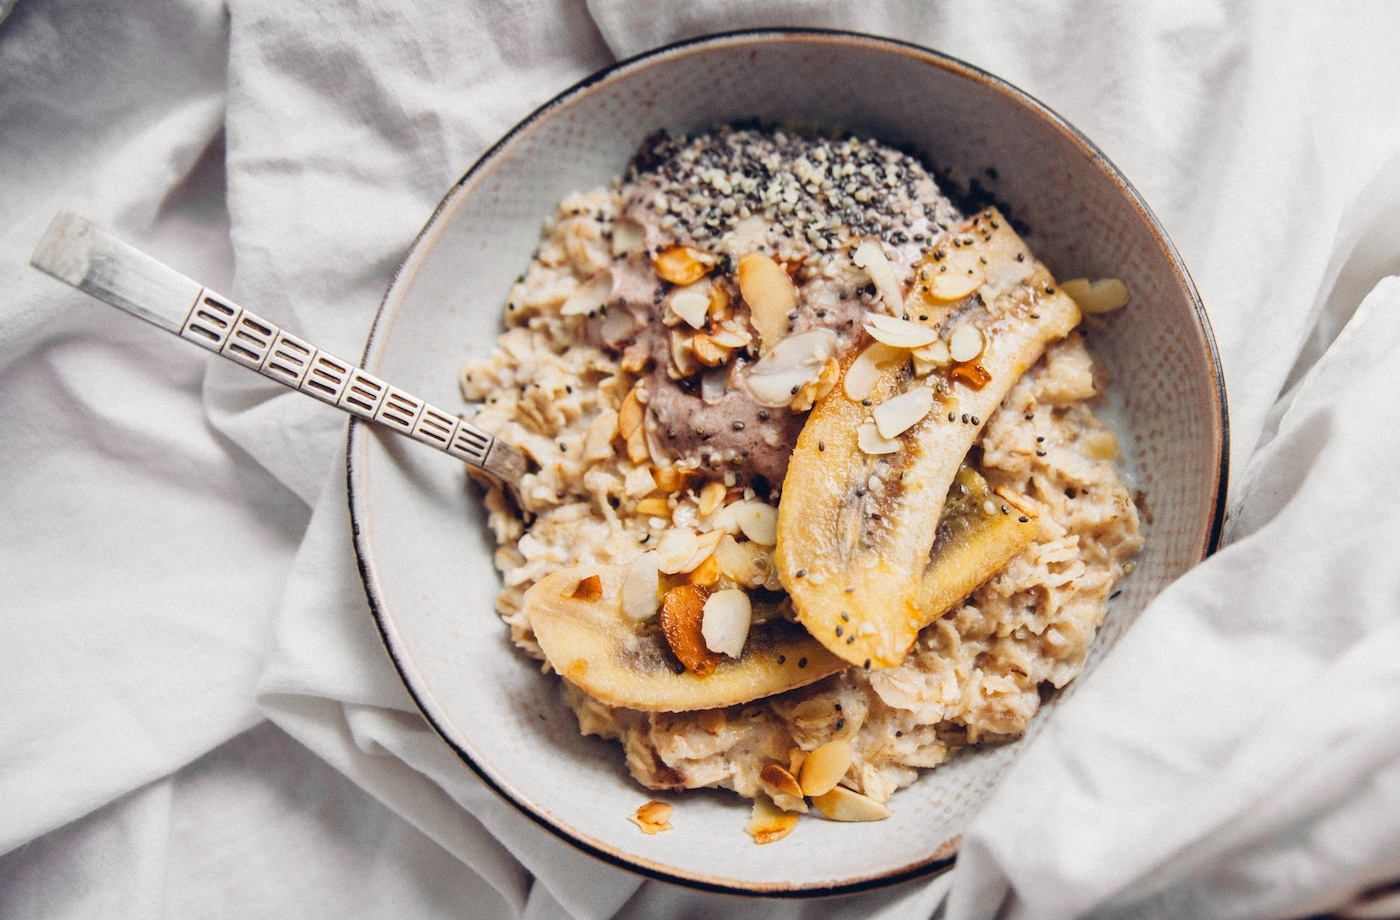 What to put in your oatmeal if you can't do another day of raisins and cinnamon without falling asleep into your bowl